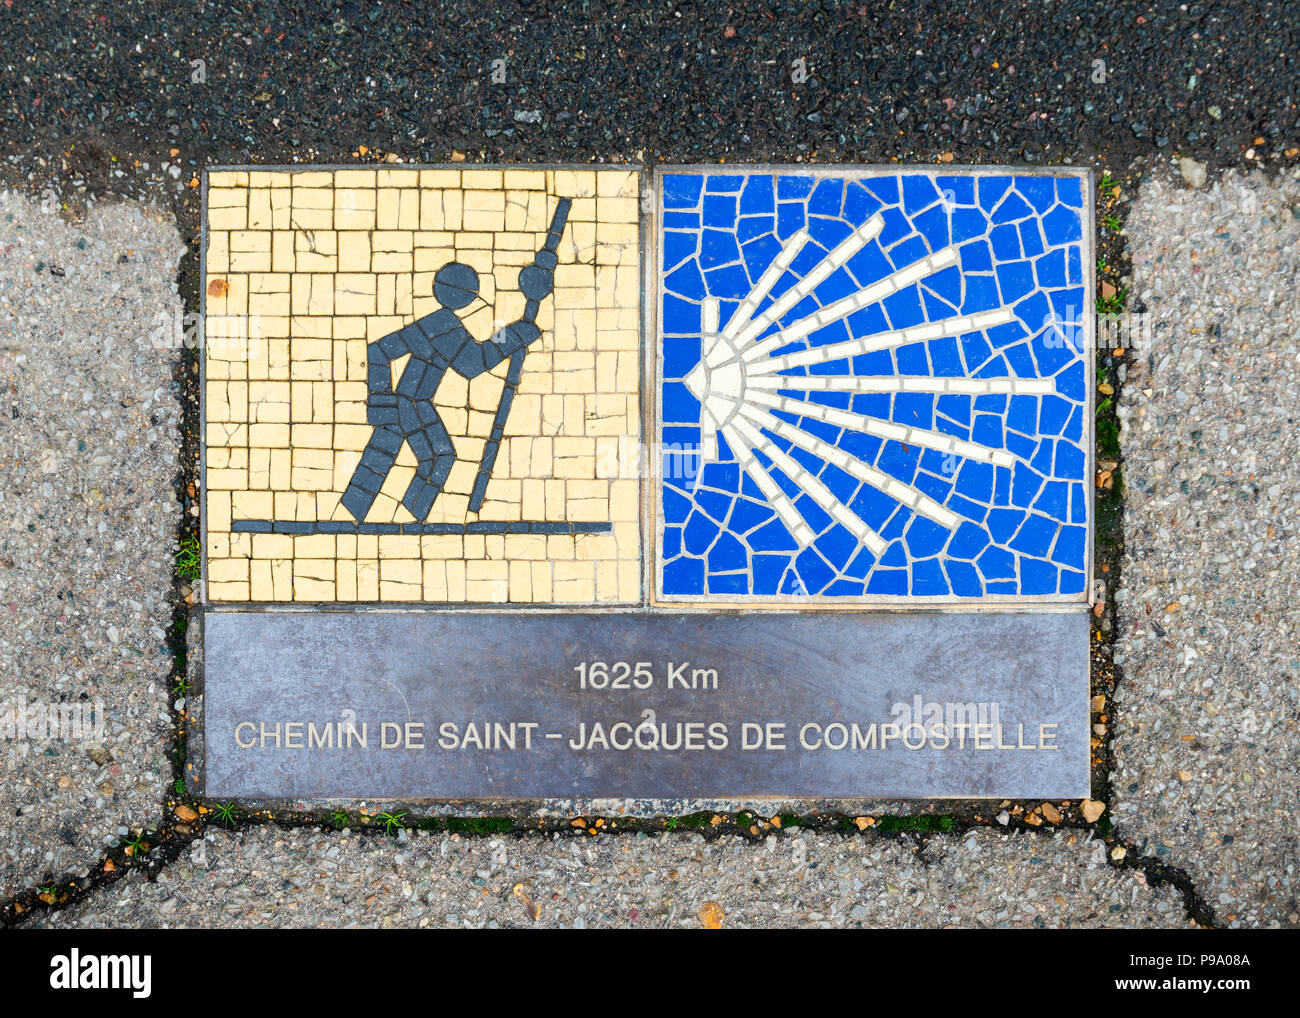 Camino de Santiago pilgrimage sign in Chartres, France. The sign reads: 1625 km Way of St James. - Stock Image